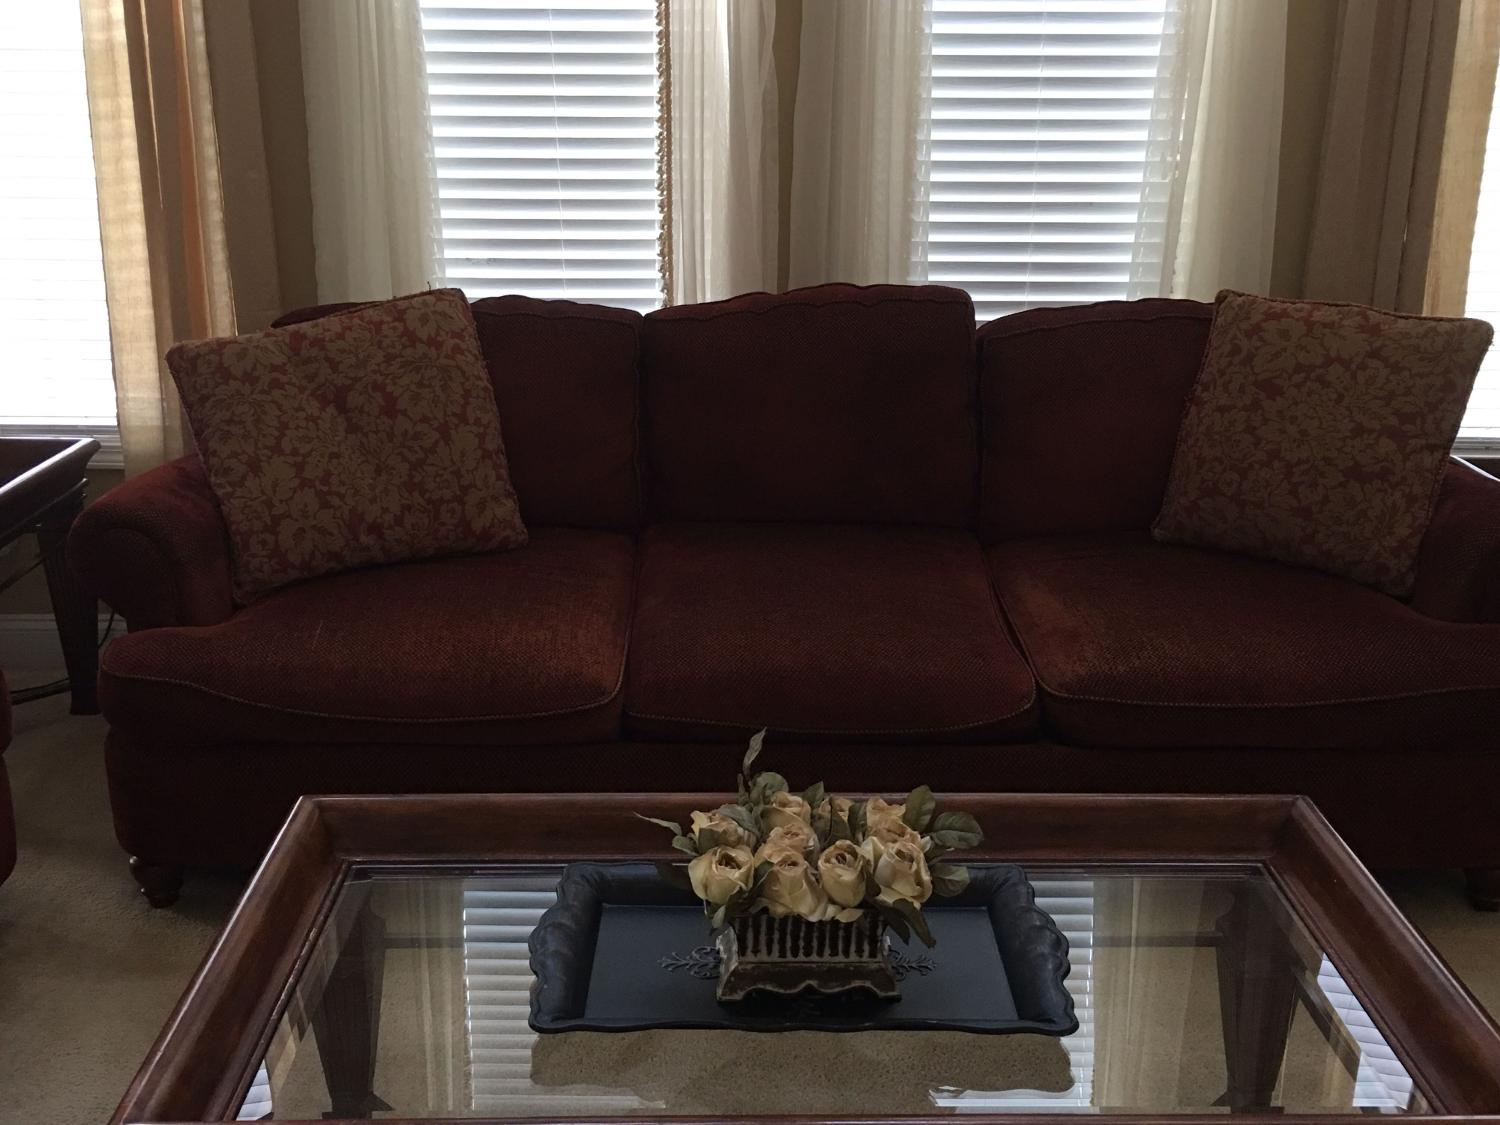 Best Sofa And Extra Large Chair For Sale In Huntersville North Carolina For 2018